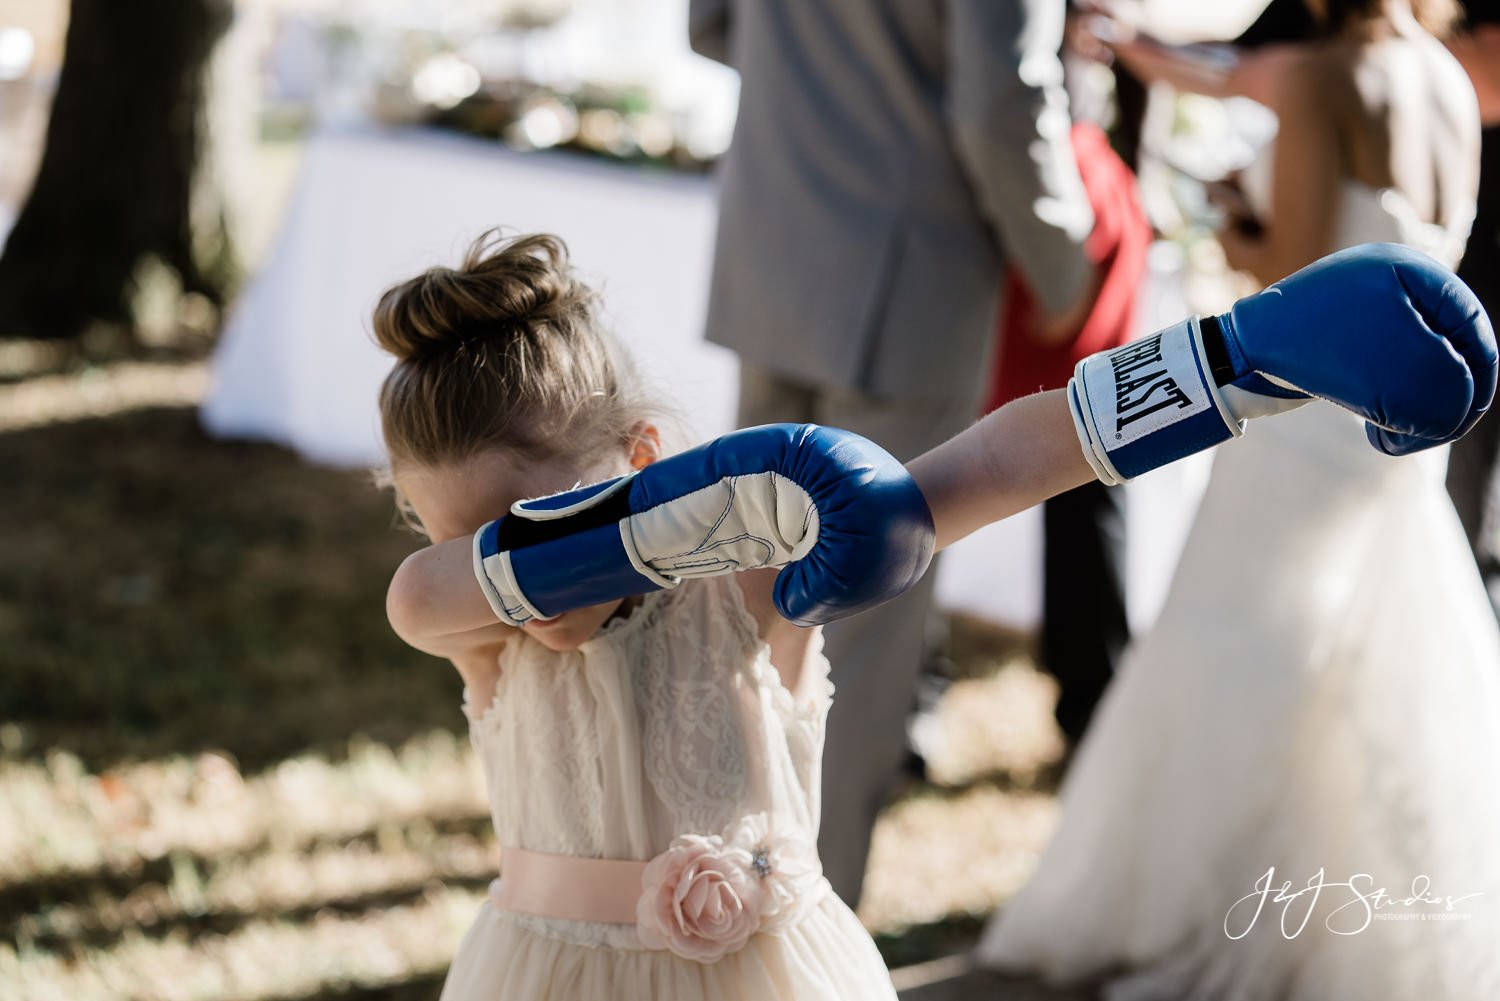 flower girl dabbing on dance floor at baltimore wedding reception photo by j&J studios